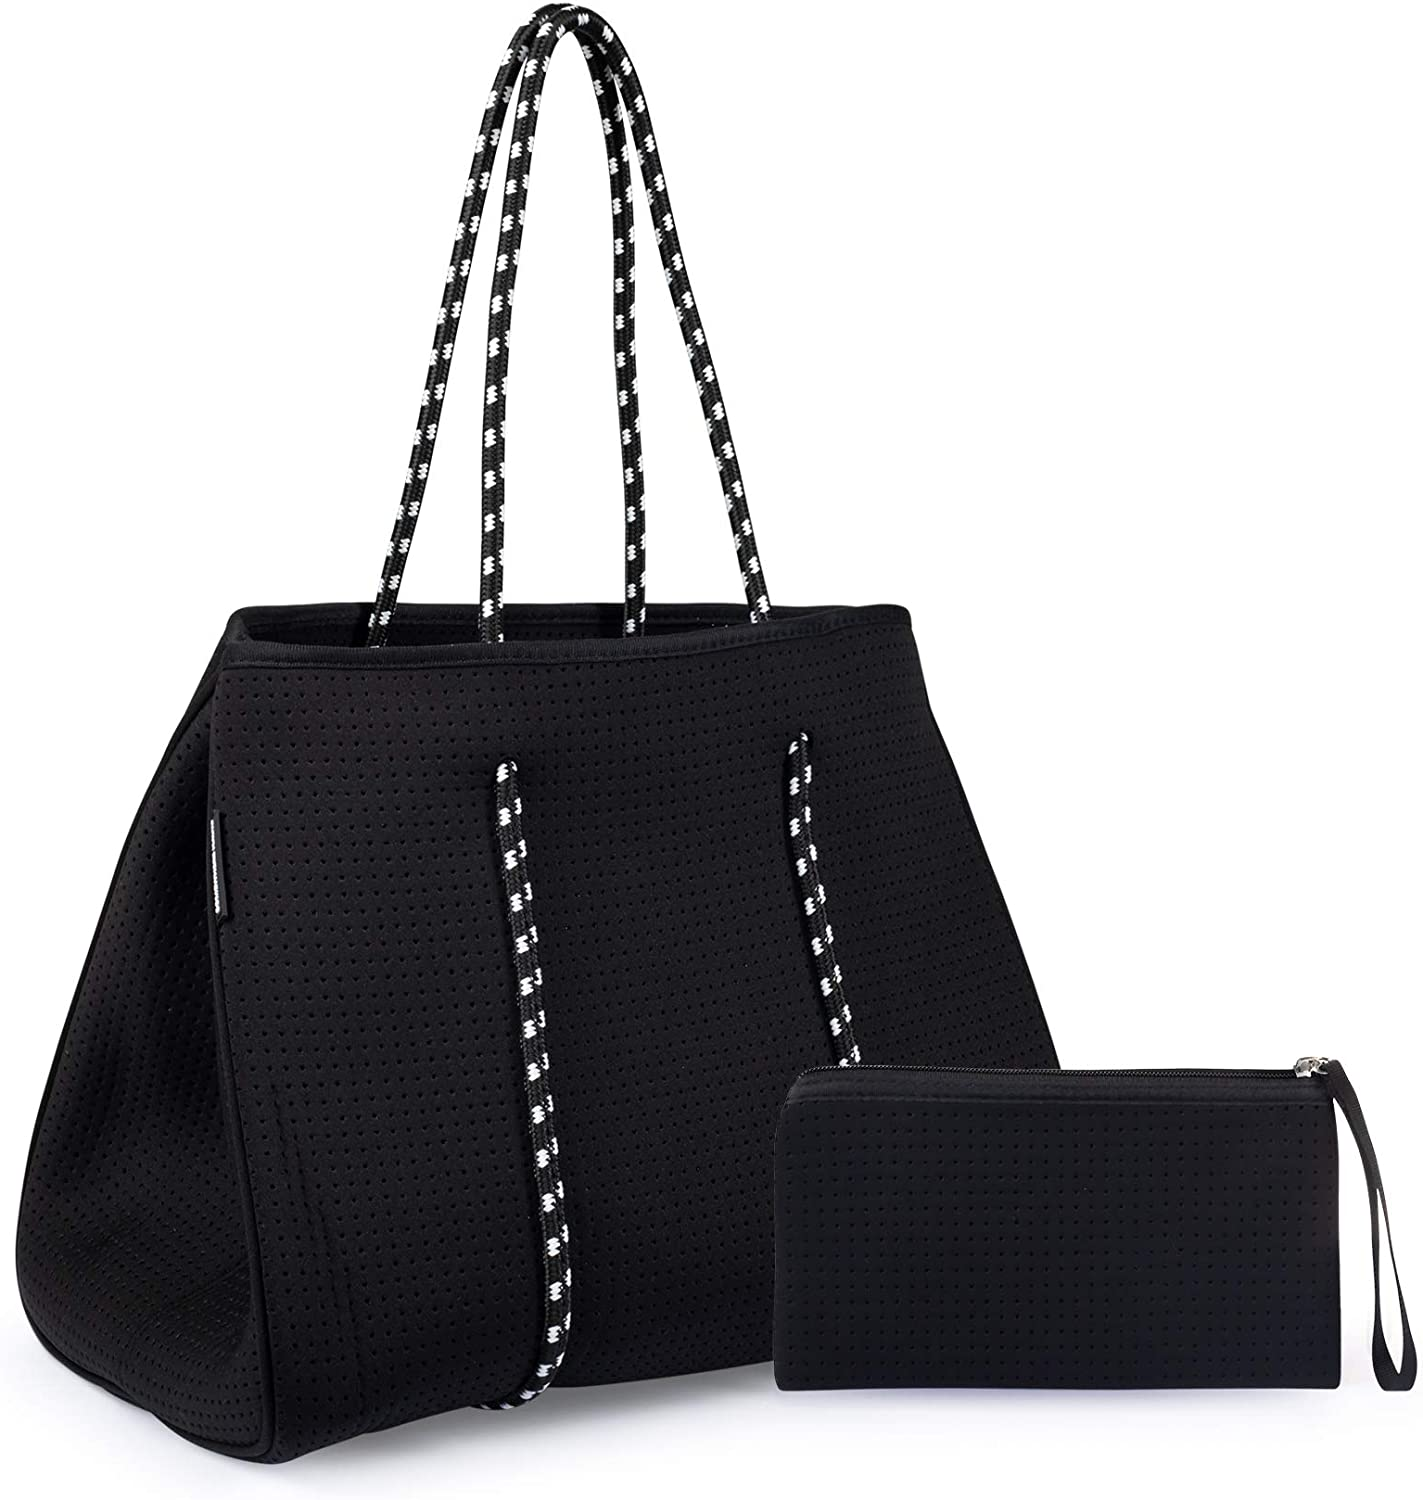 Somewhere Haute Neoprene Tote Bag With Shoulder Straps for Women